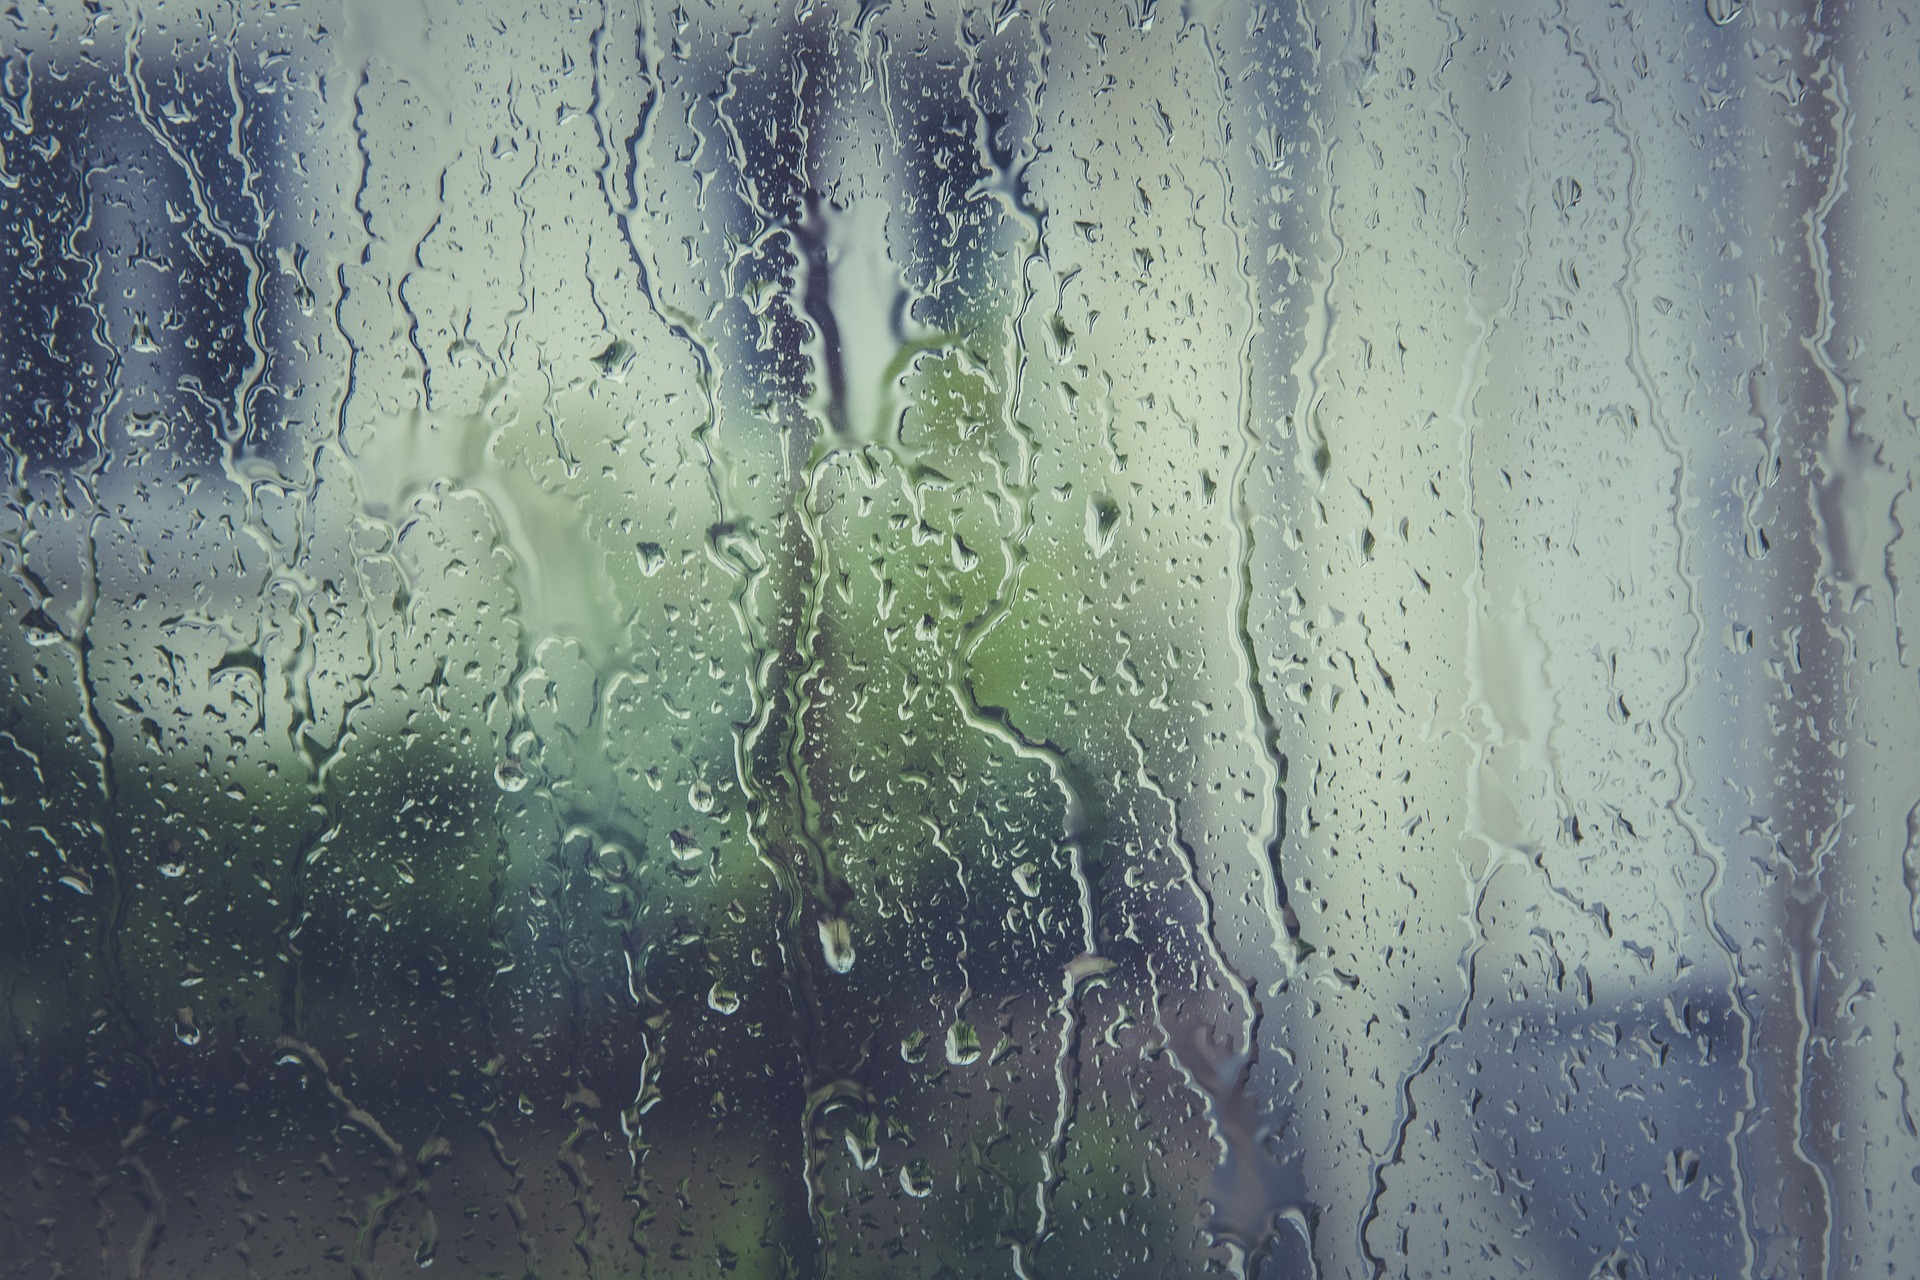 water between the panes of glass